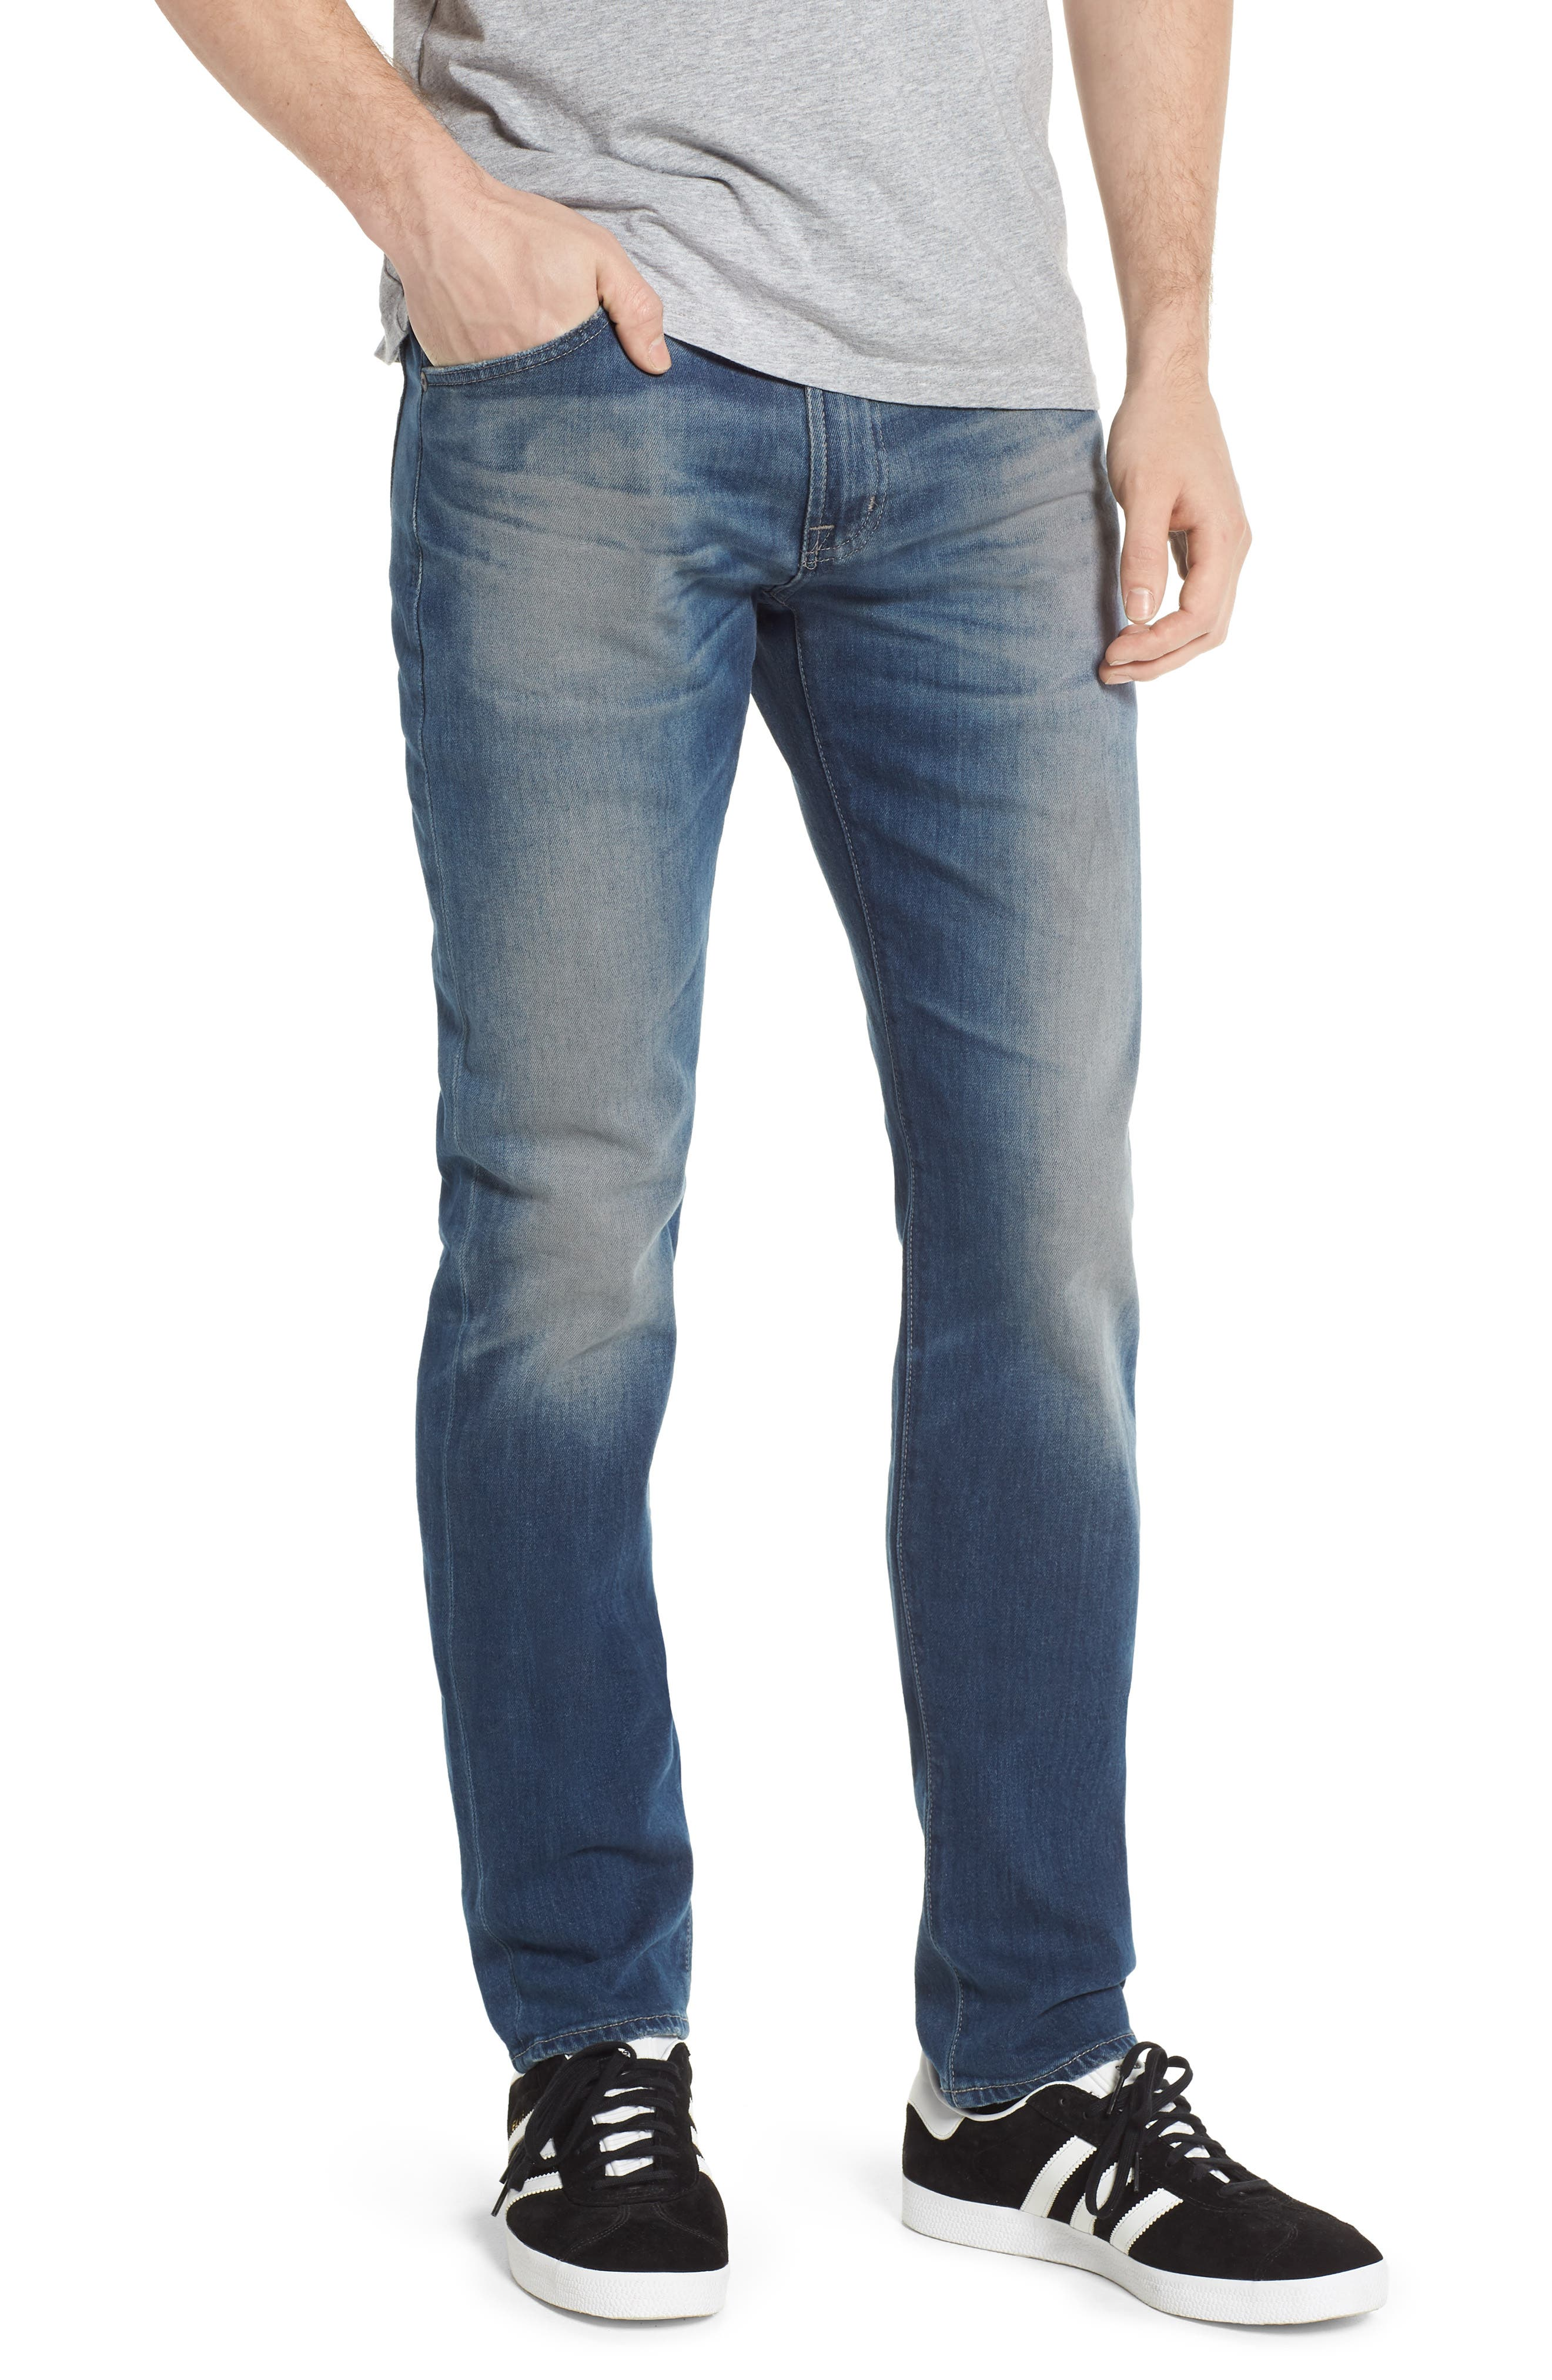 Dylan Skinny Fit Jeans,                             Main thumbnail 1, color,